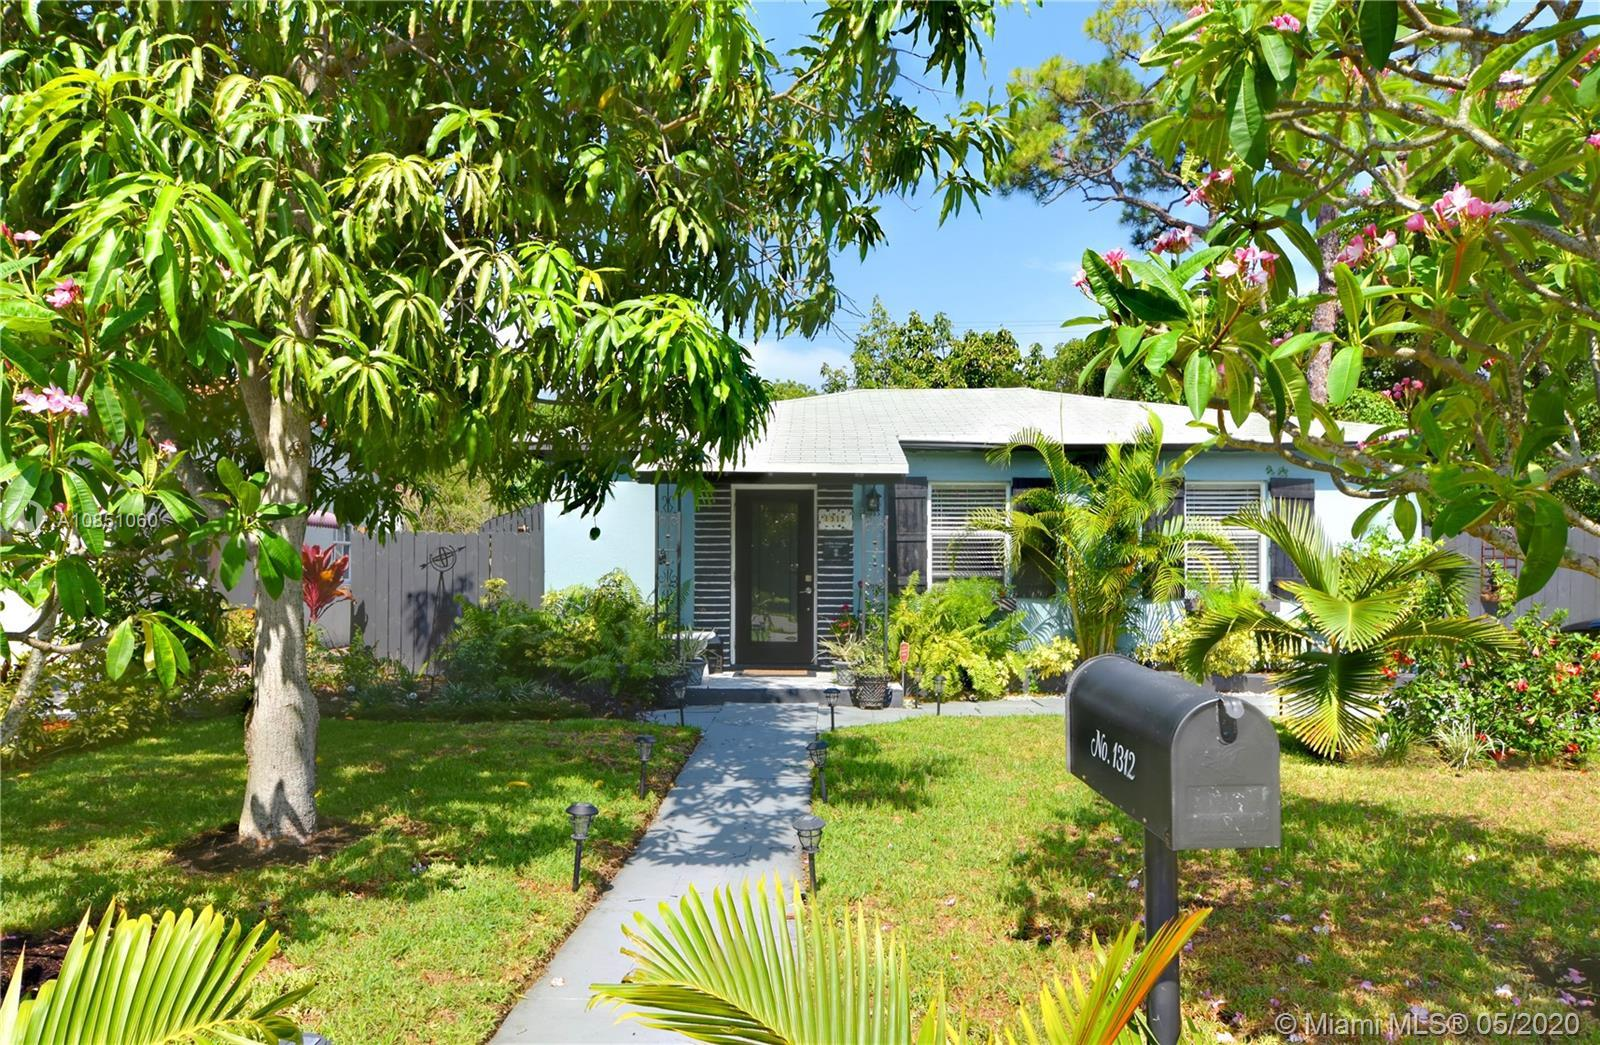 Tranquil Oasis tucked away minutes from Downtown and Wilton Drive. Charming 3 bedroom 1 bath with ea